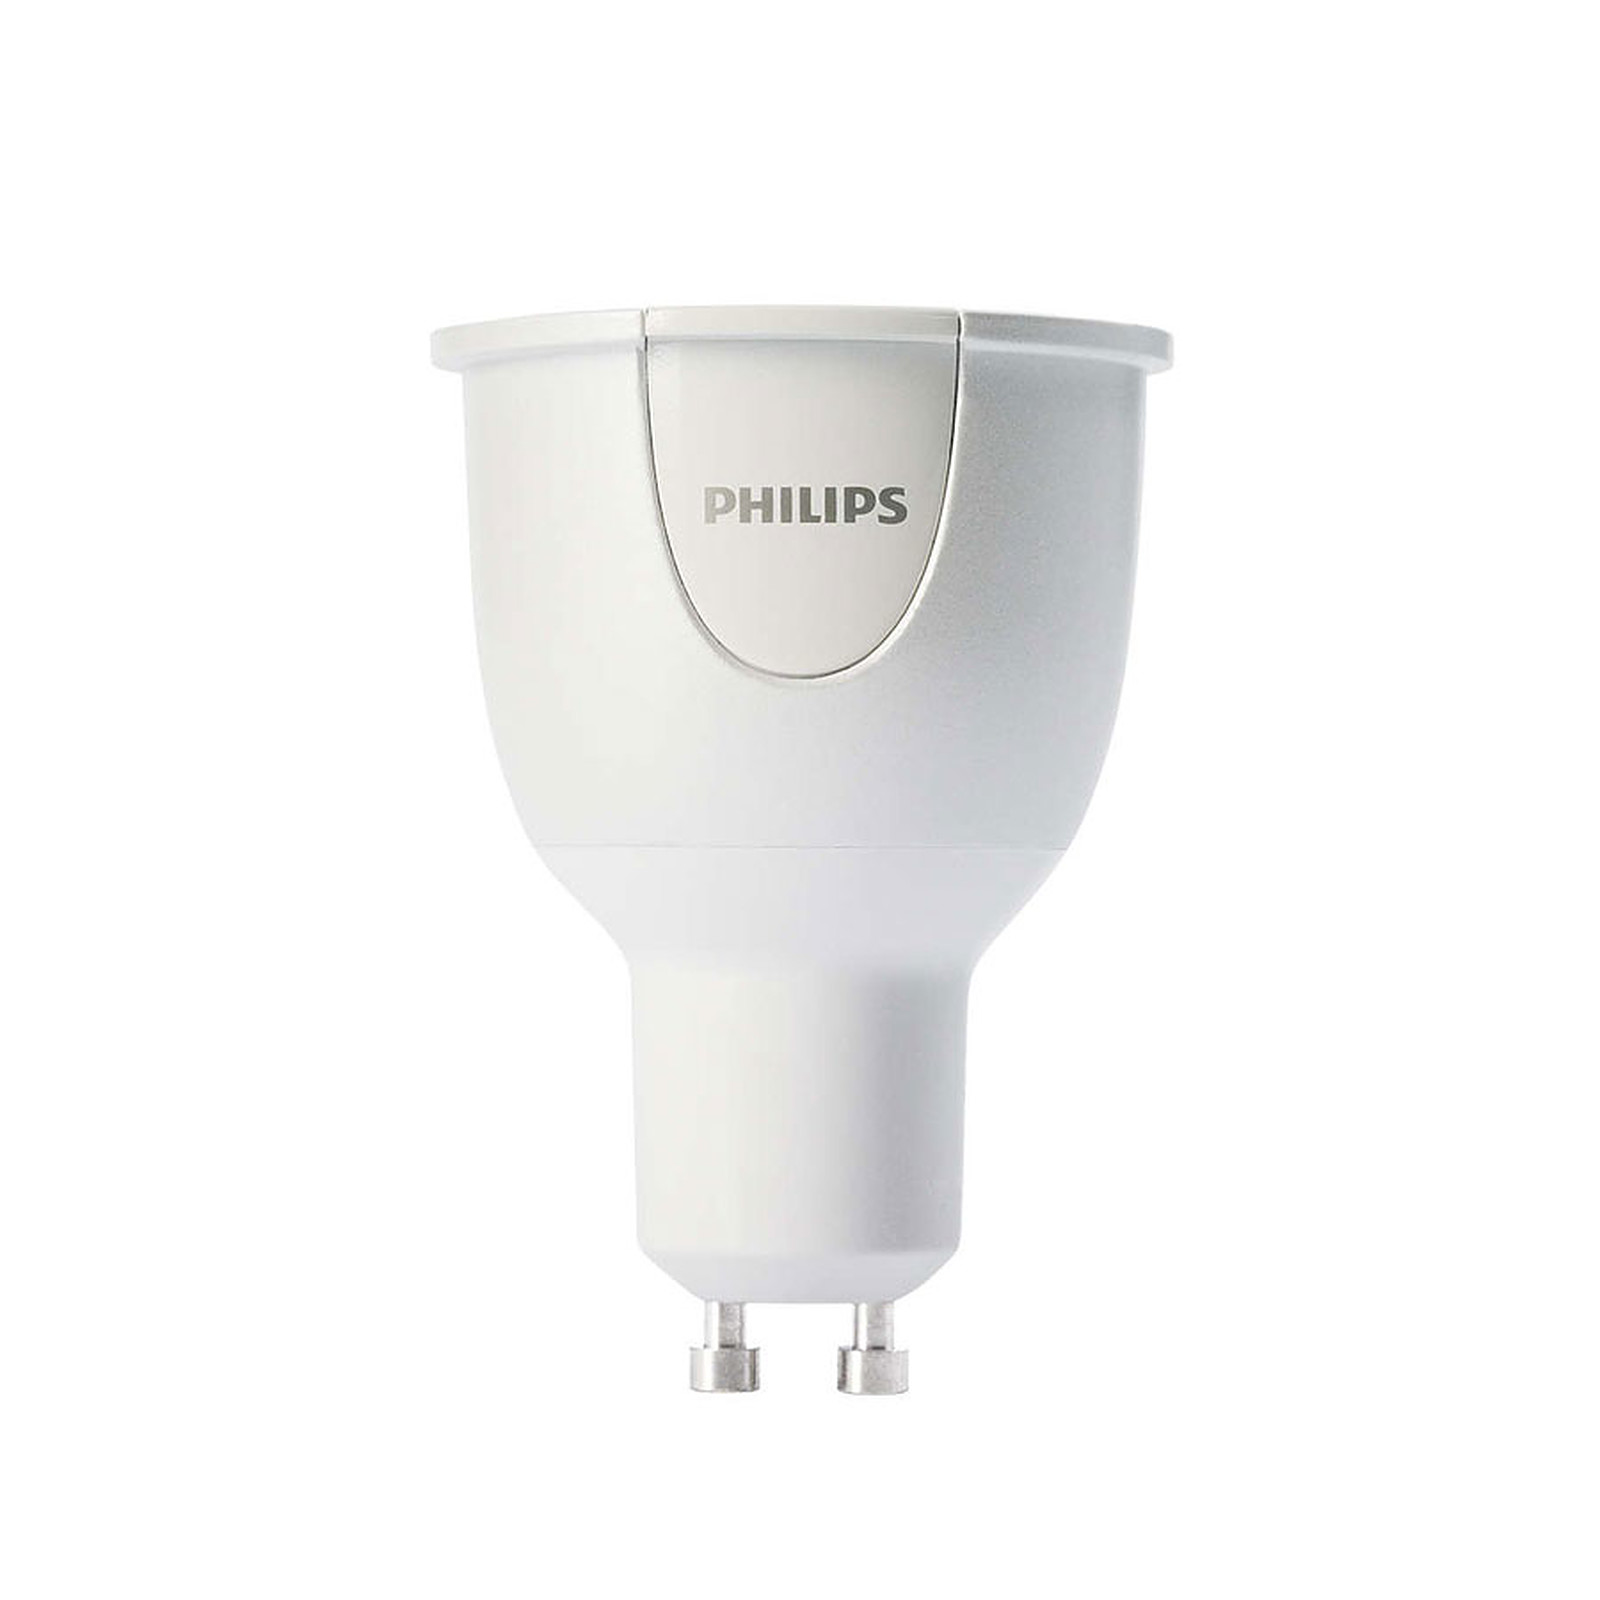 Philips Hue White & Color GU10